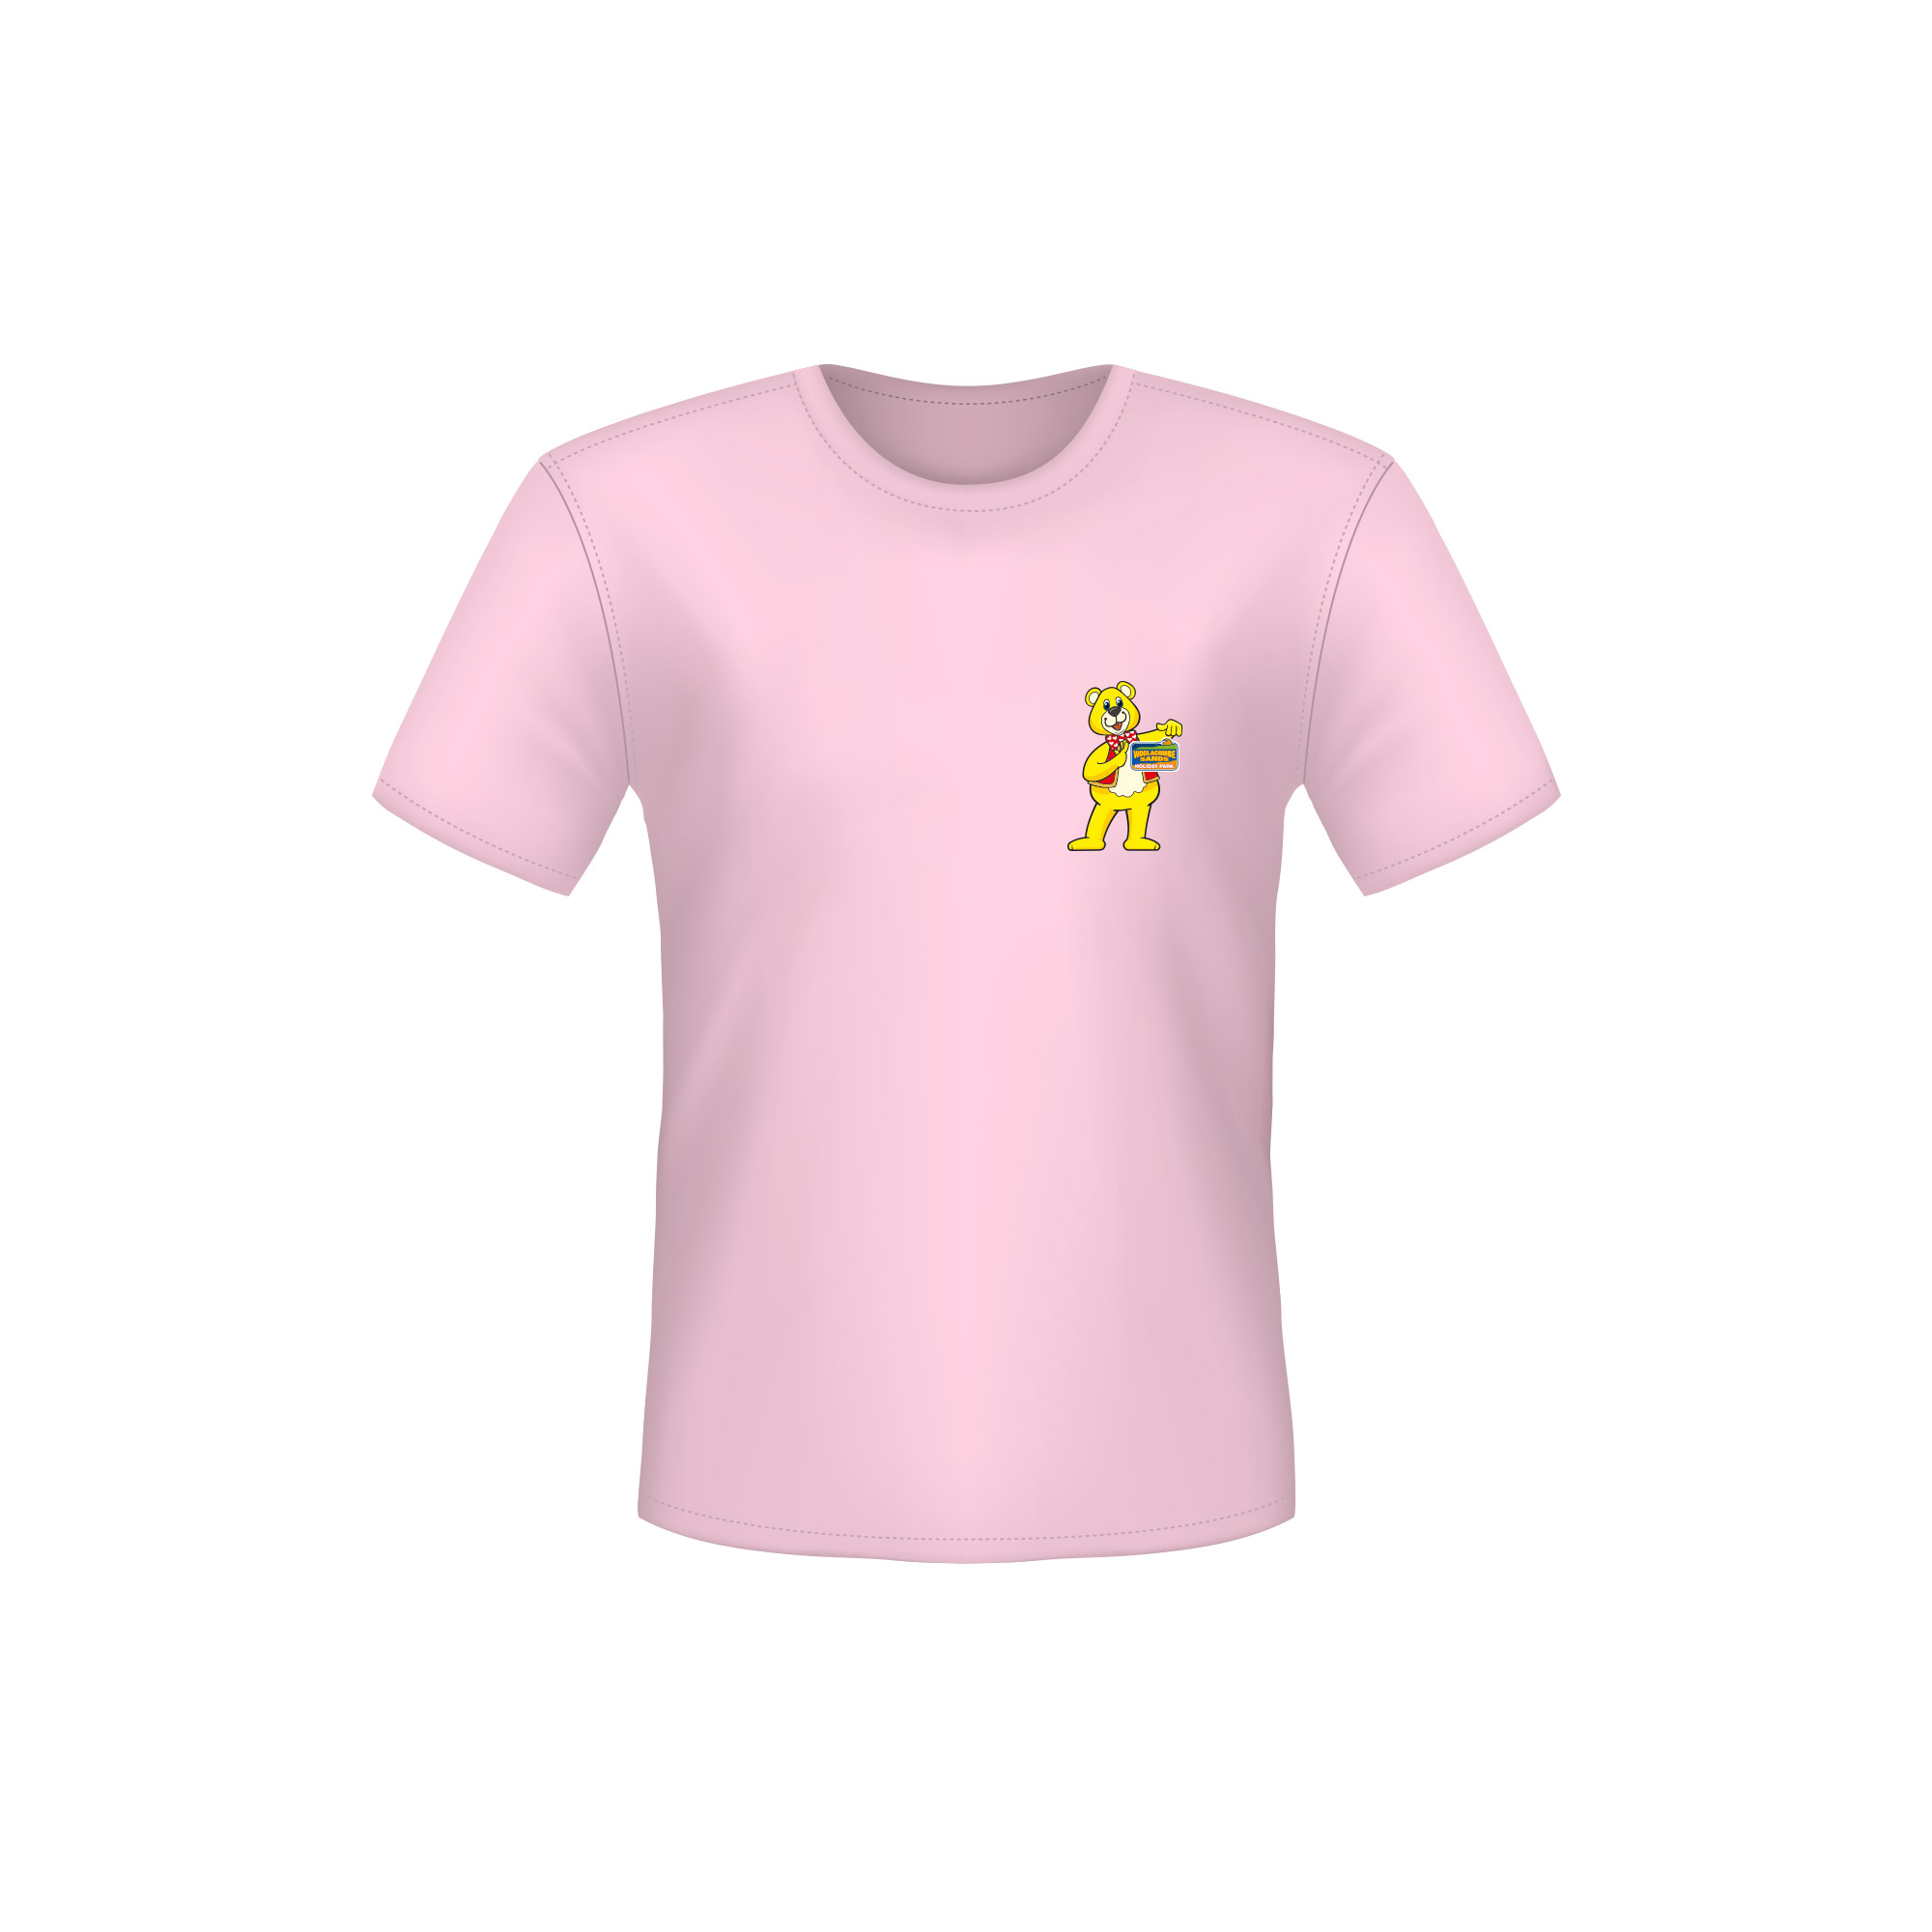 A Pink T-Shirt with a Woolly Bear Logo on the left side of the chest